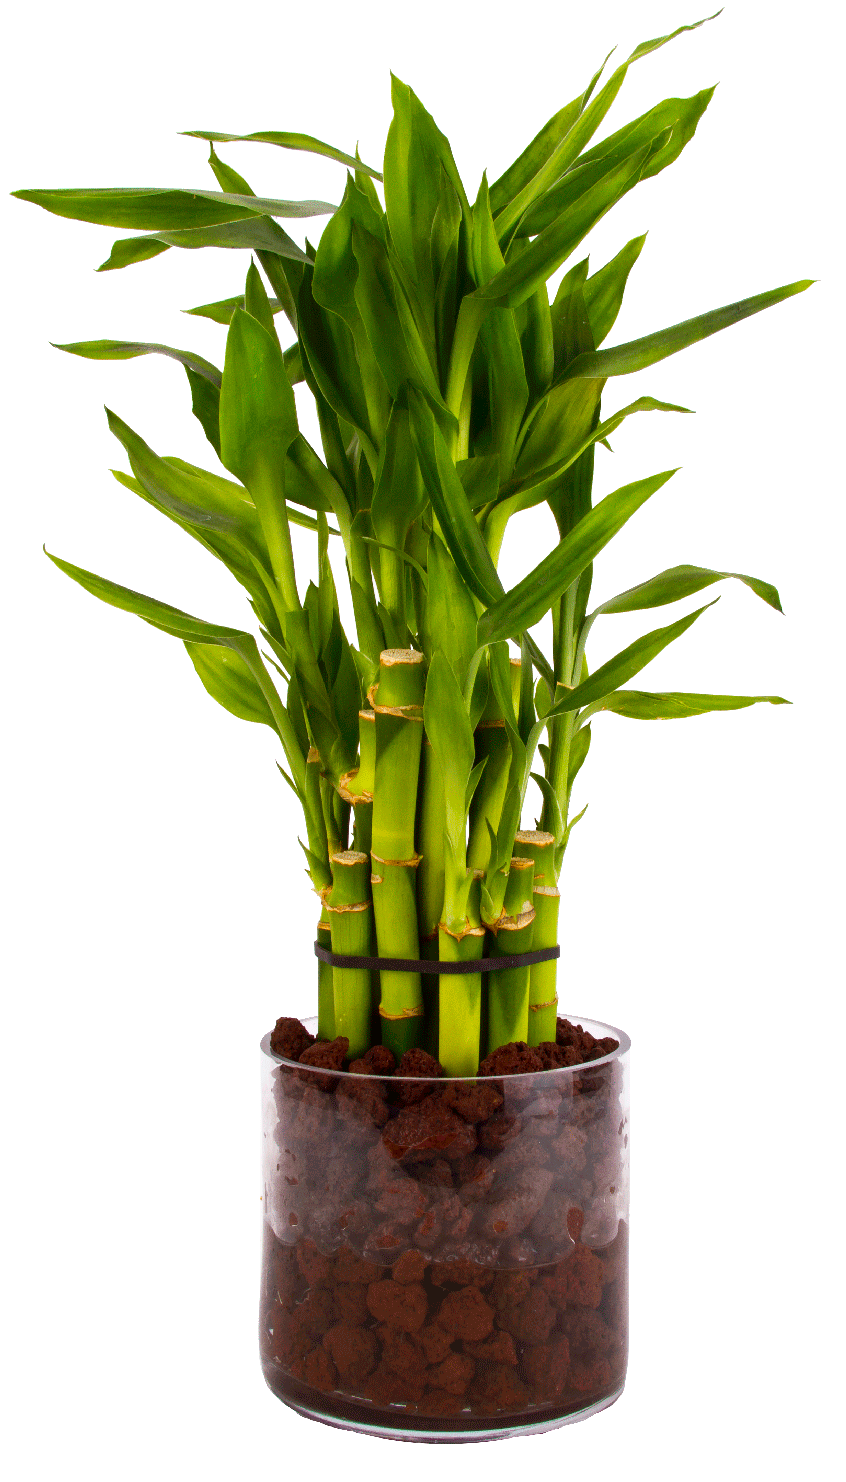 What do the colors of ribbon symbolize on lucky bamboo ehow - Lucky Bamboo In Glass Vase With Lava Rock